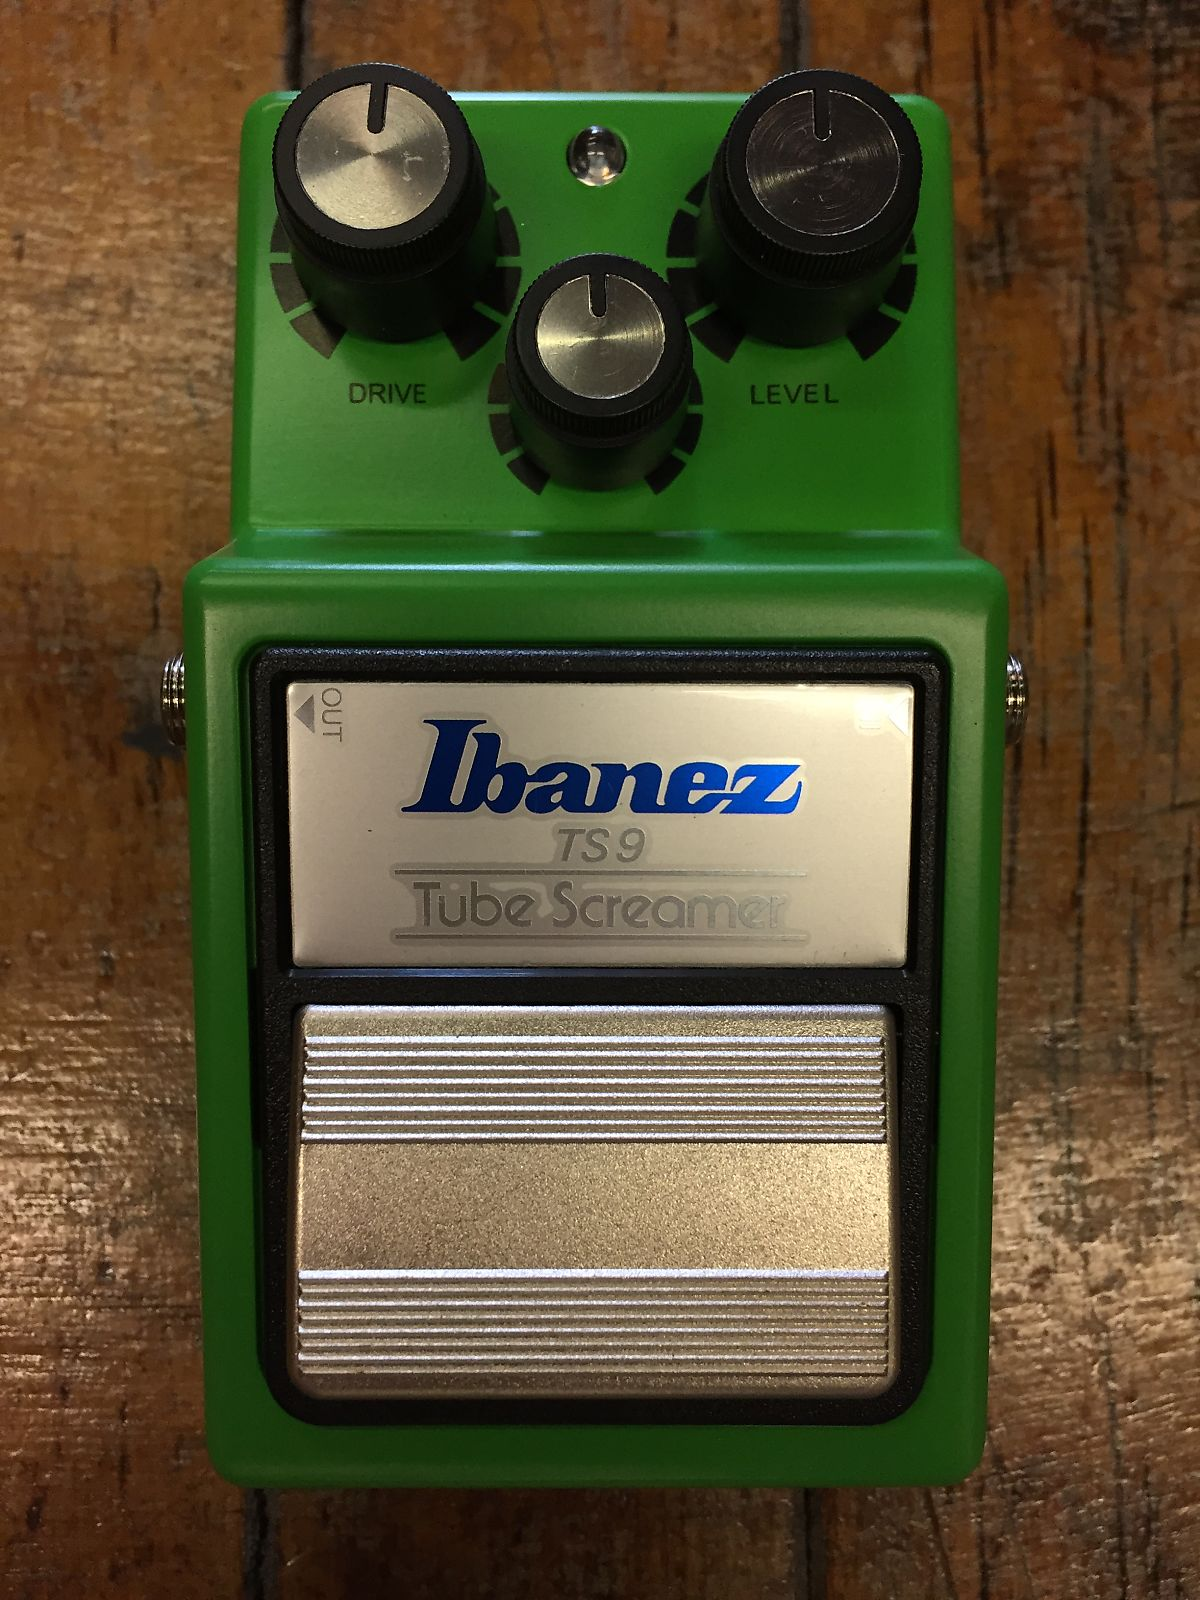 Ibanez TS9 Tube Screamer 2017